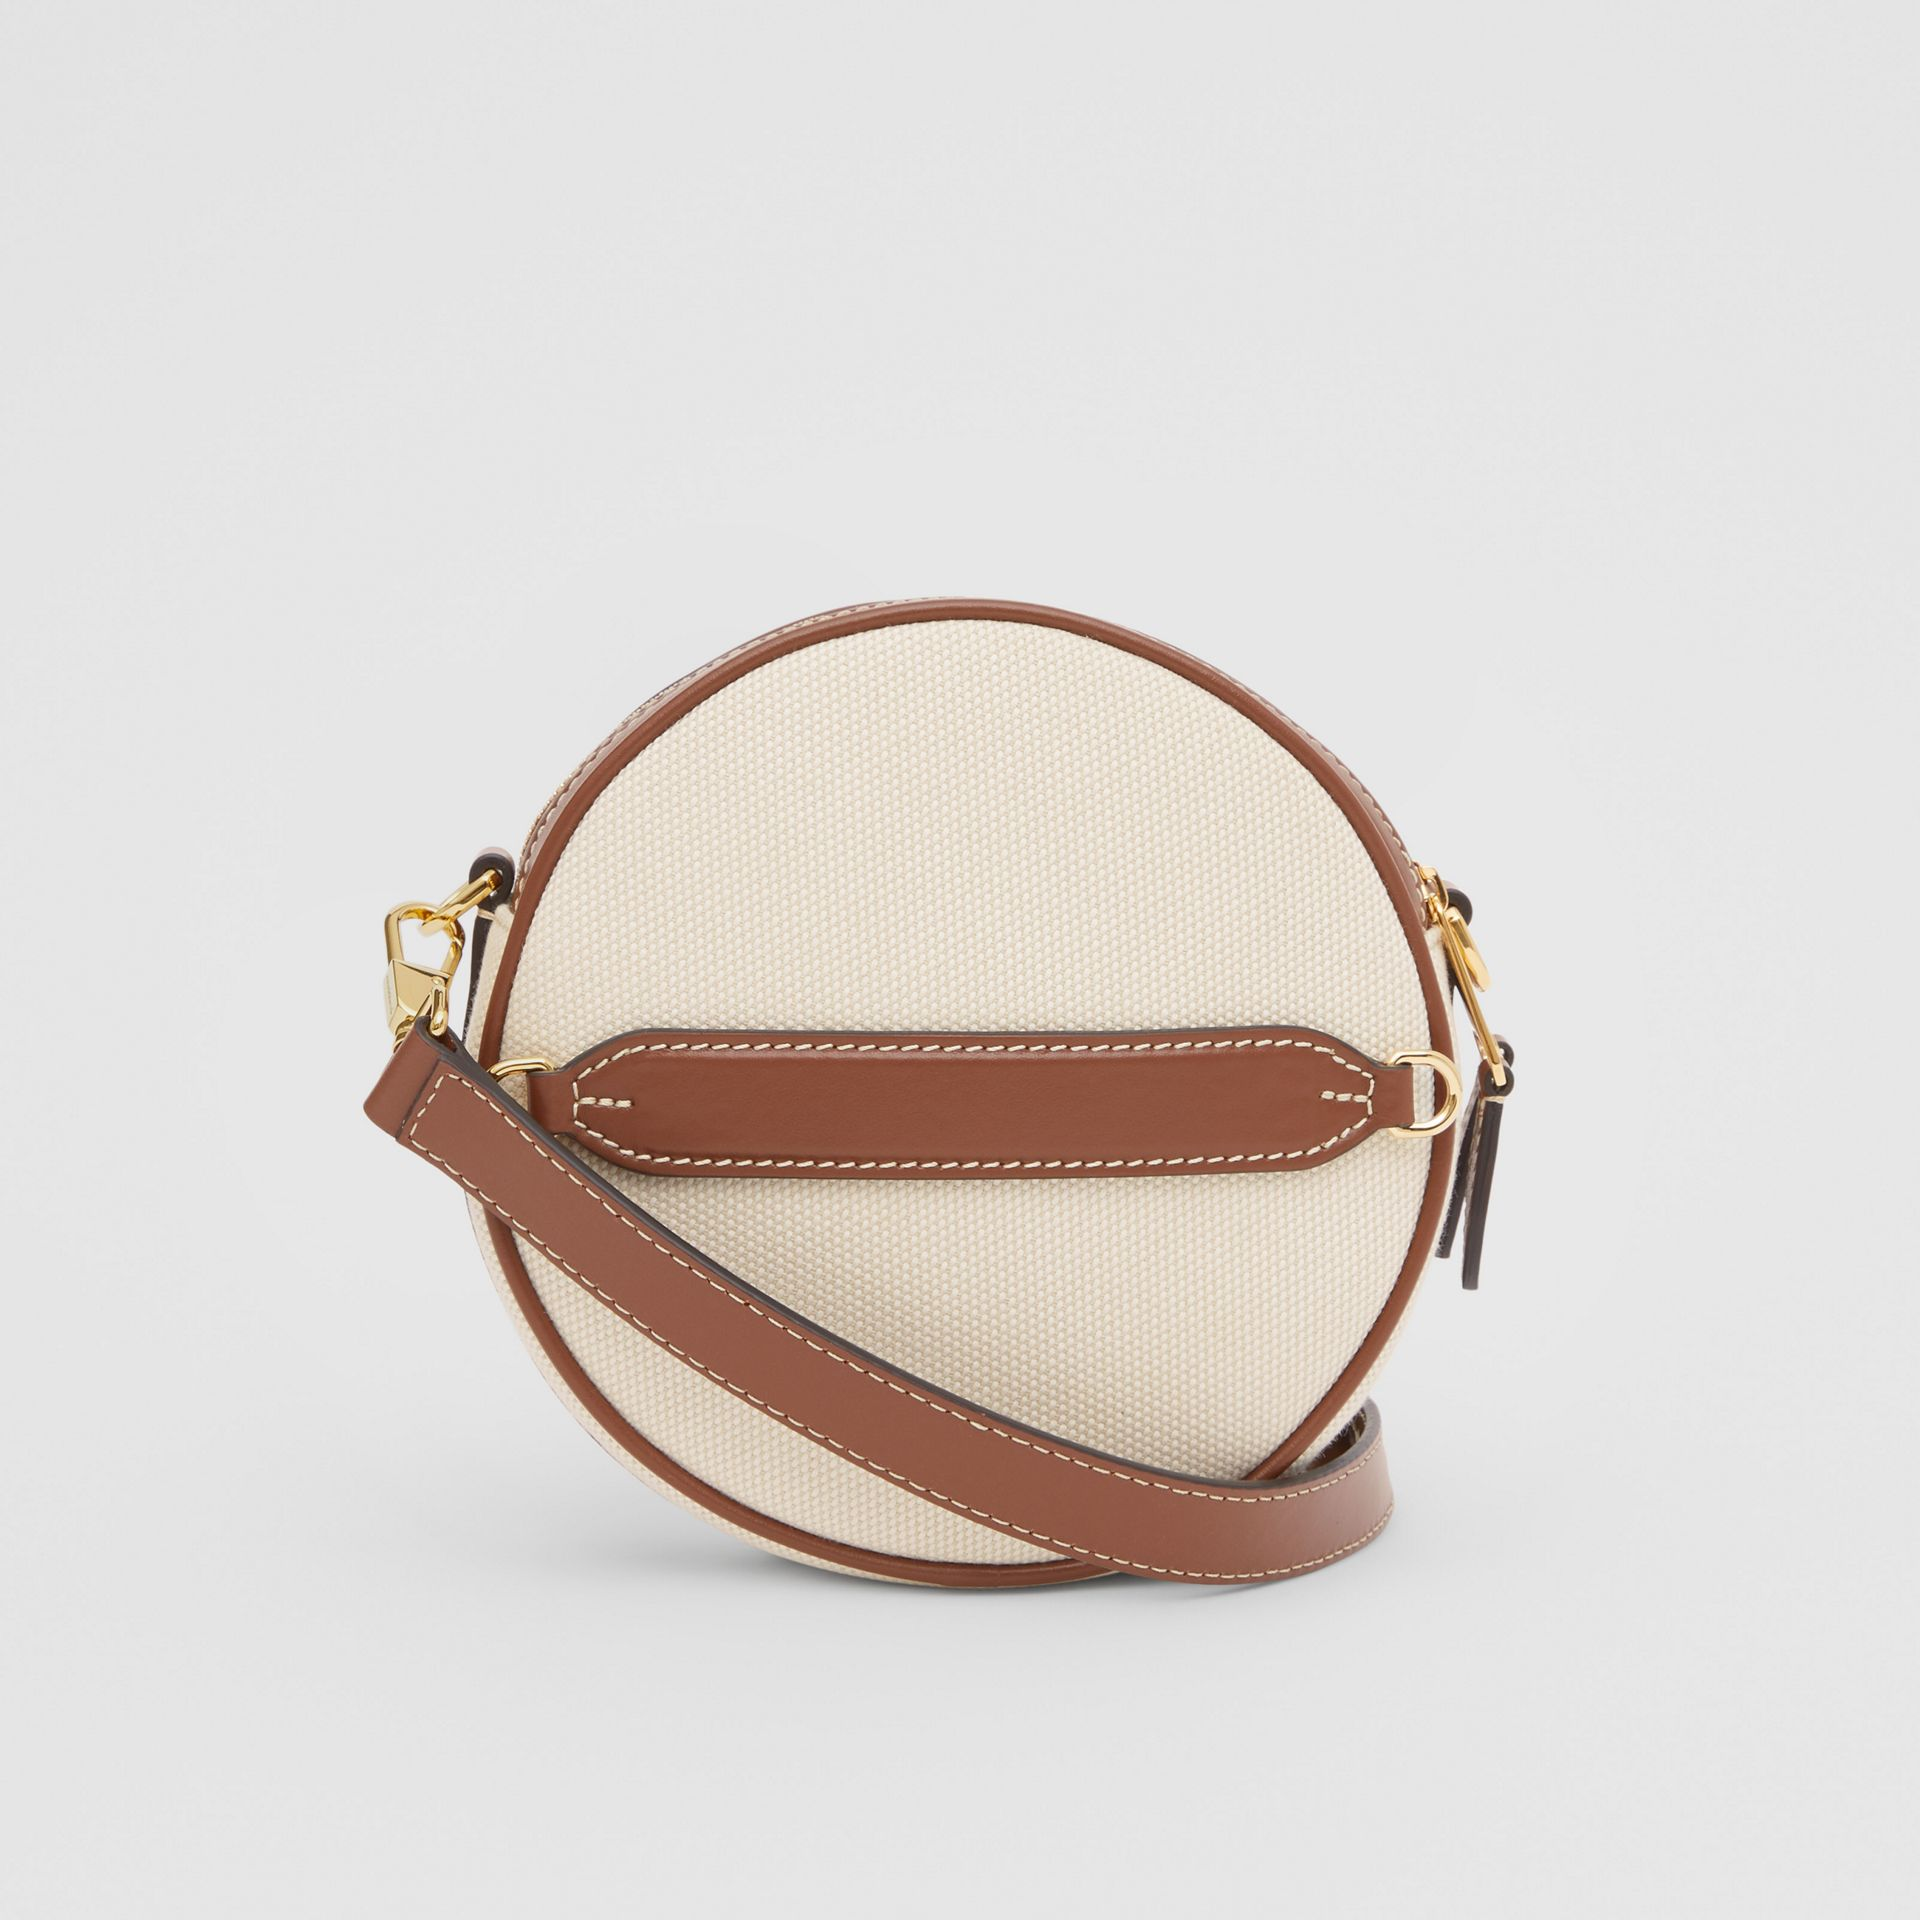 Logo Graphic Canvas and Leather Louise Bag in Natural - Women | Burberry United States - gallery image 7